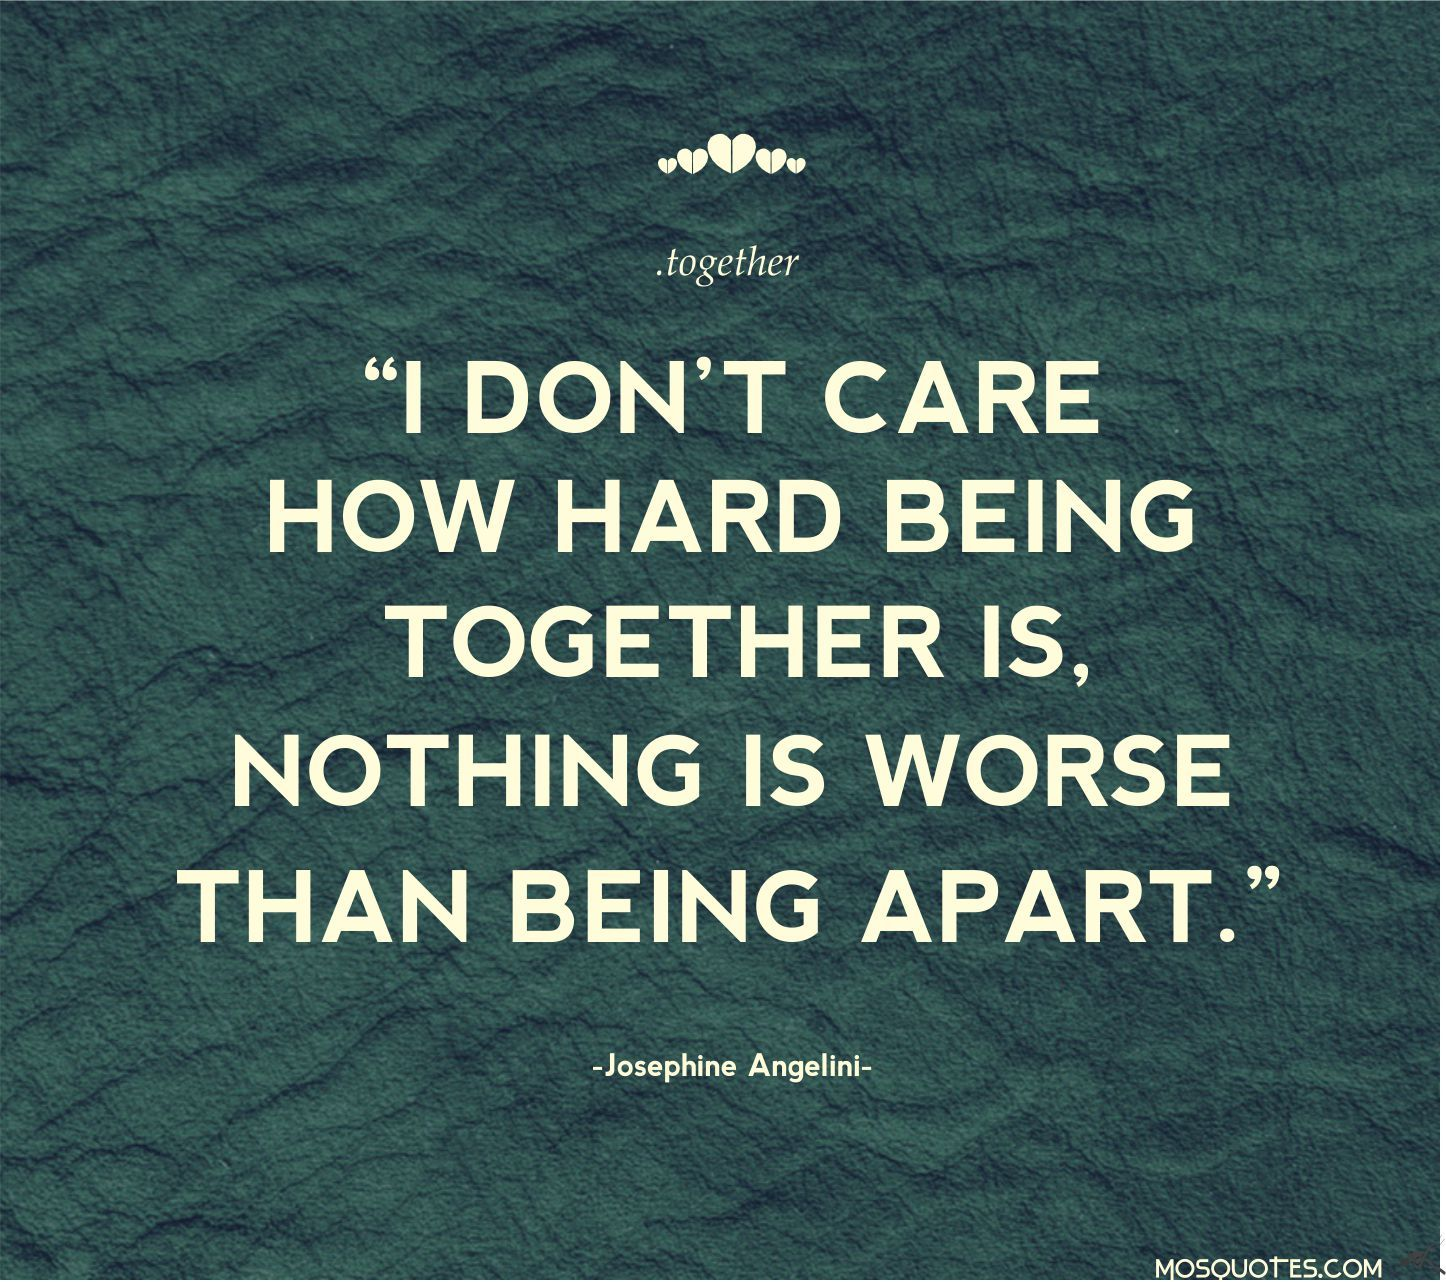 I don't care how hard being together is, nothing is worse than being apart.